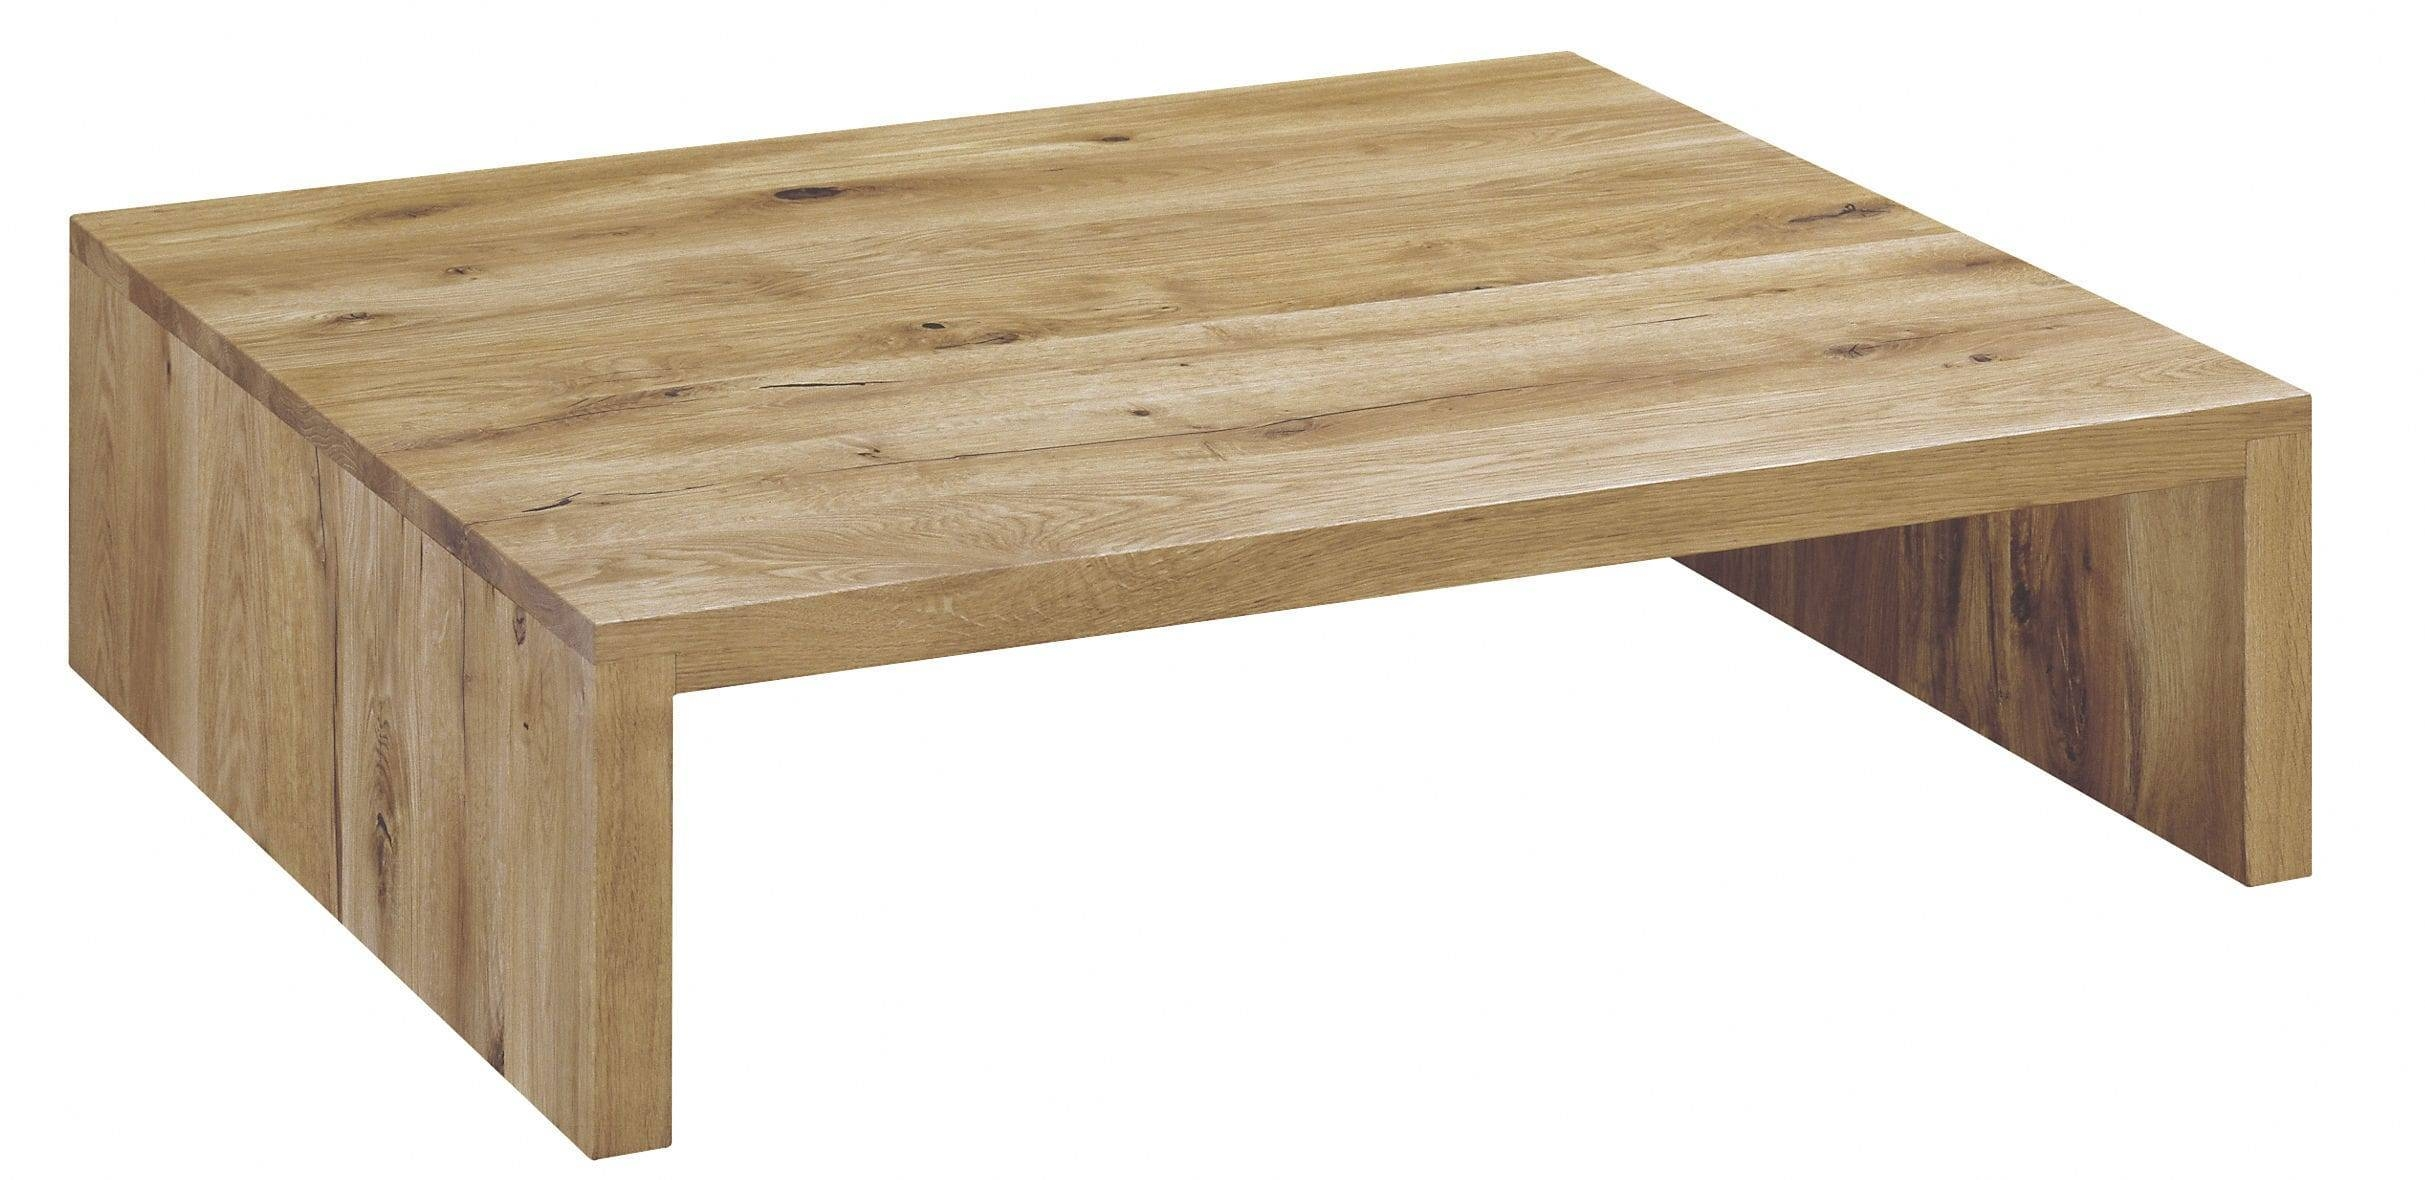 15 Best Collection of Contemporary Oak Coffee Table